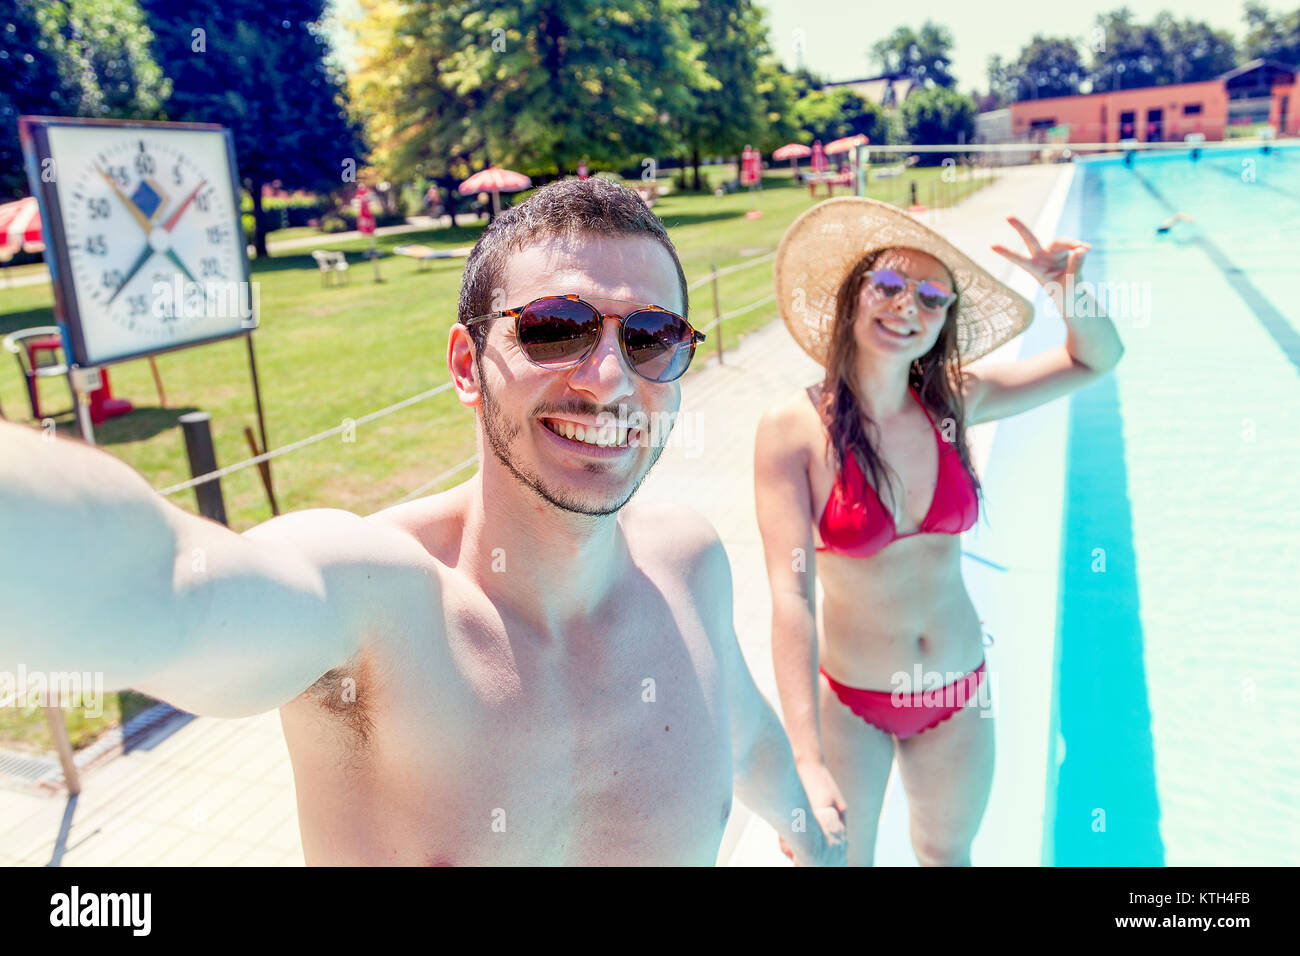 Young loving couple beside the pool takes a selfie in swimsuit. Concept of young people having fun in summertime - Stock Image